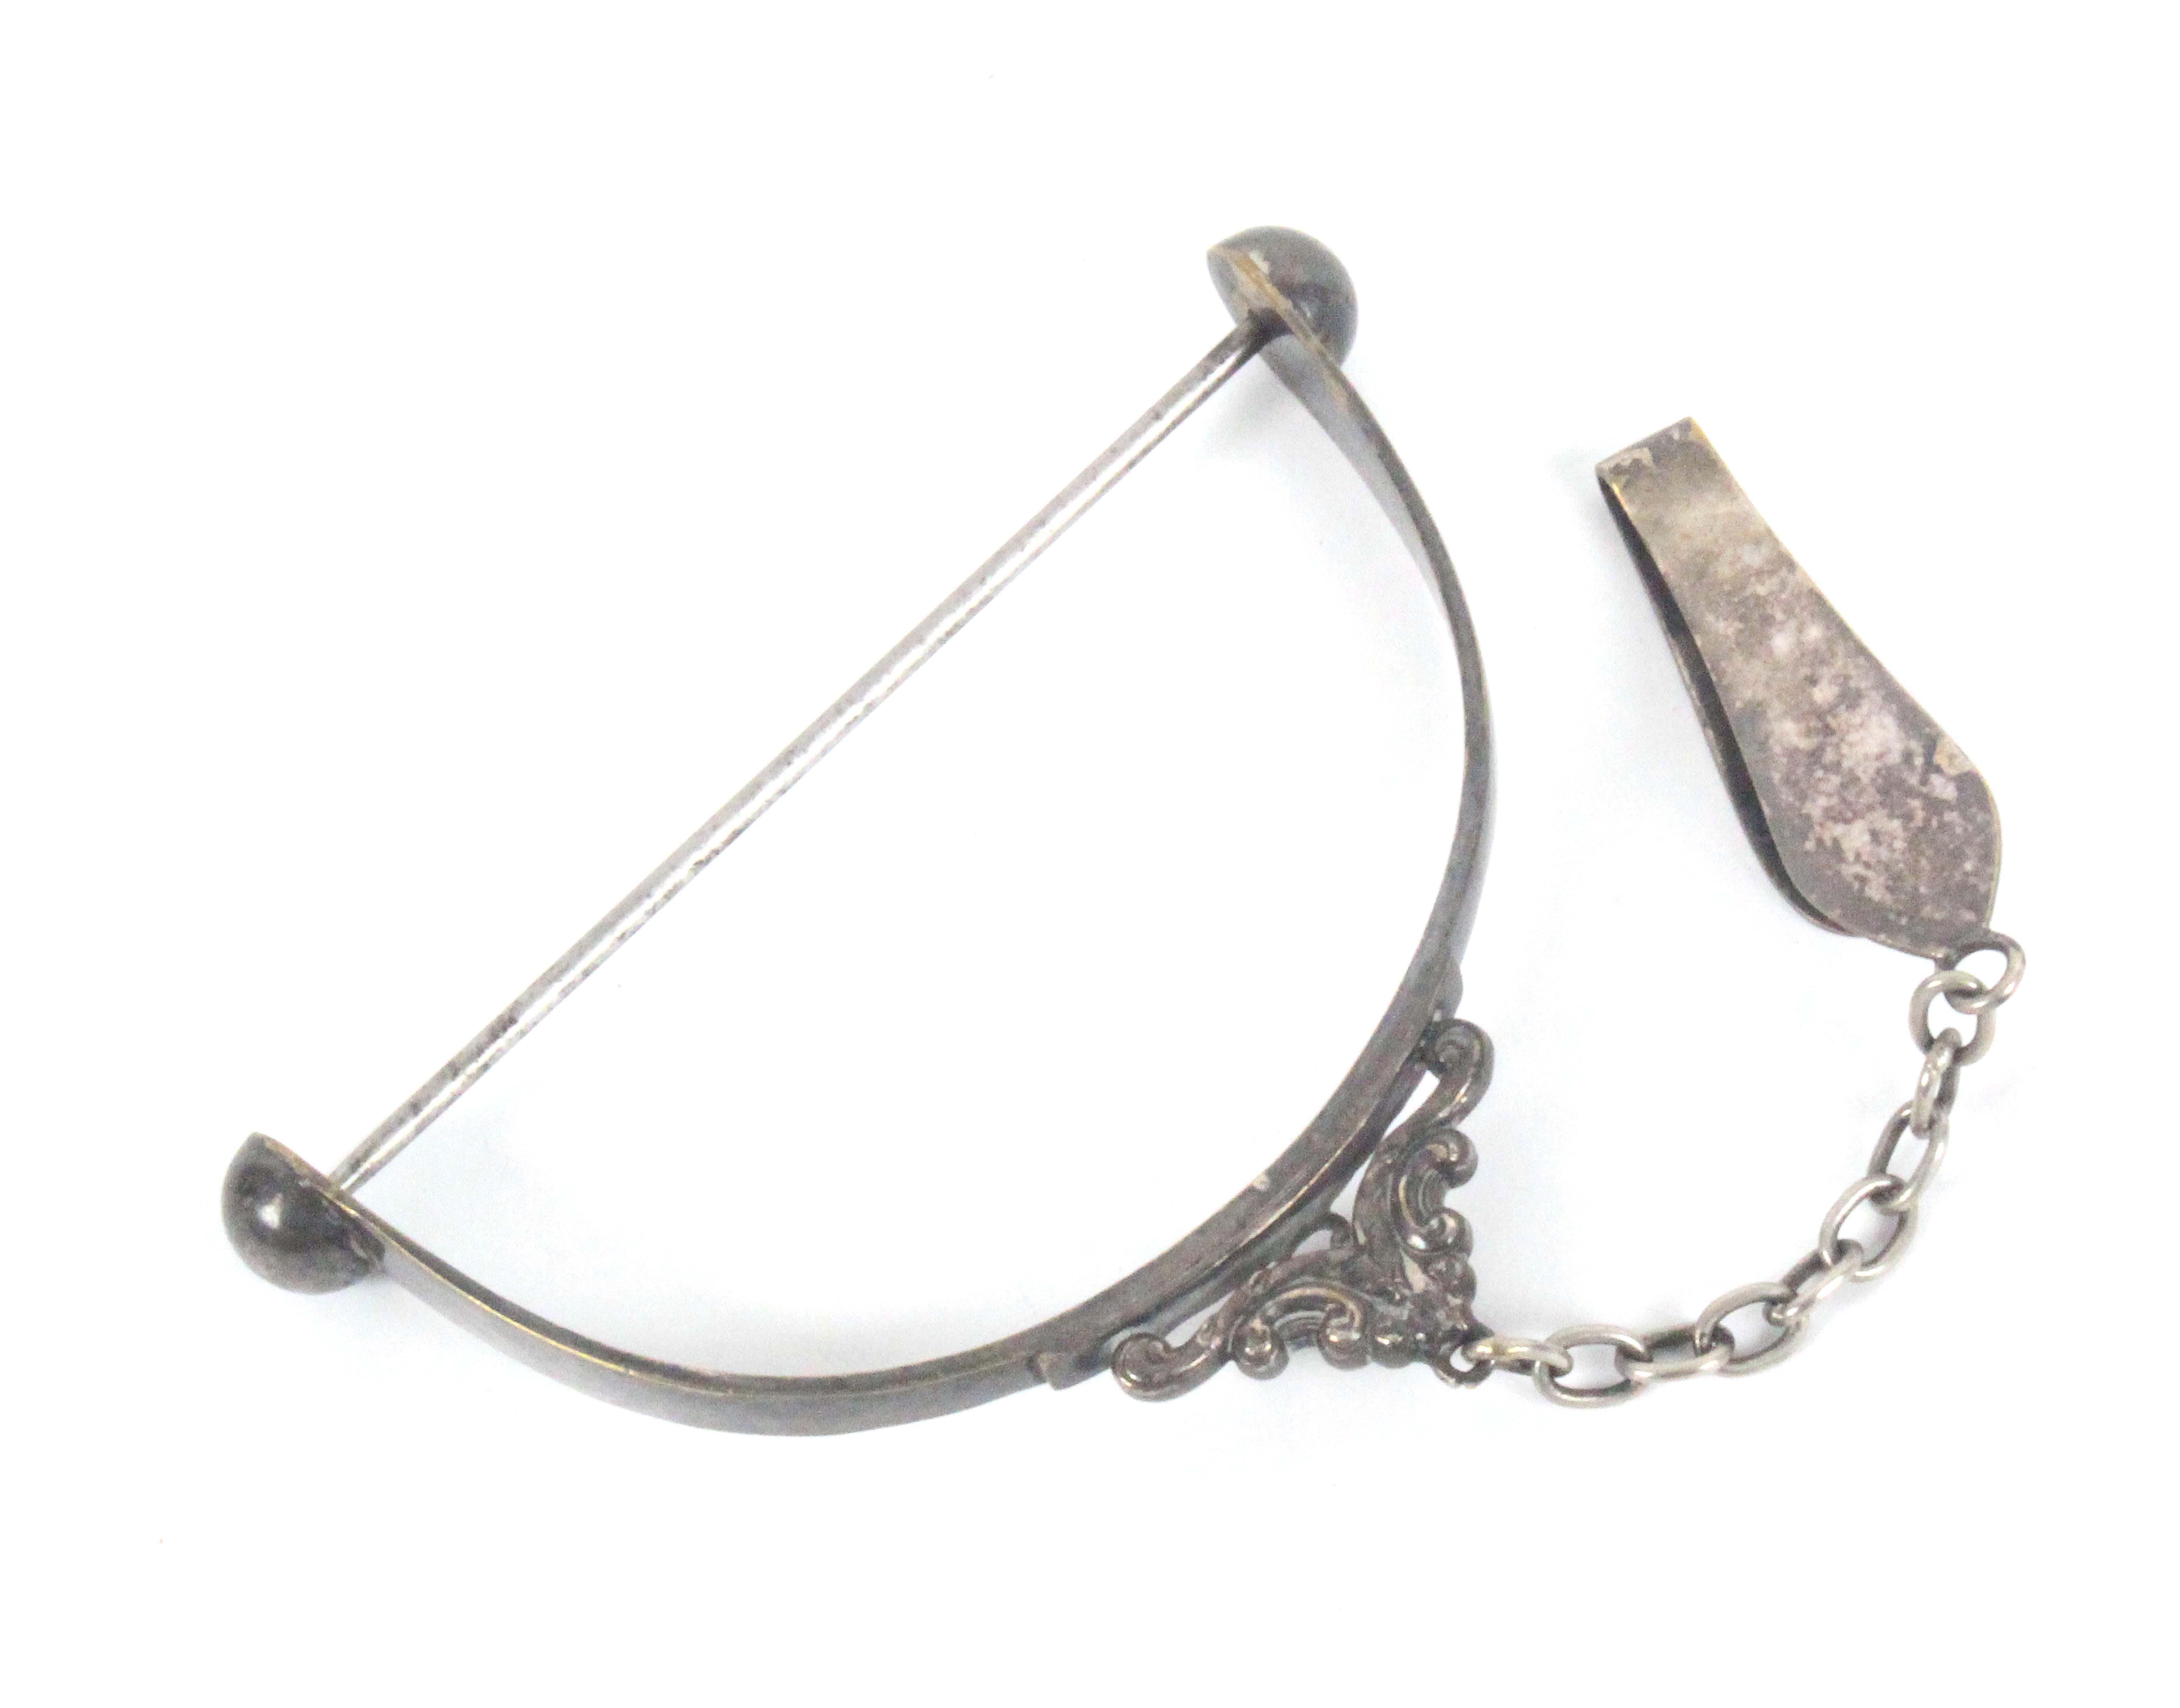 A silver plated spool knave, the stirrup form frame to a scroll mount, chain and chatelaine style